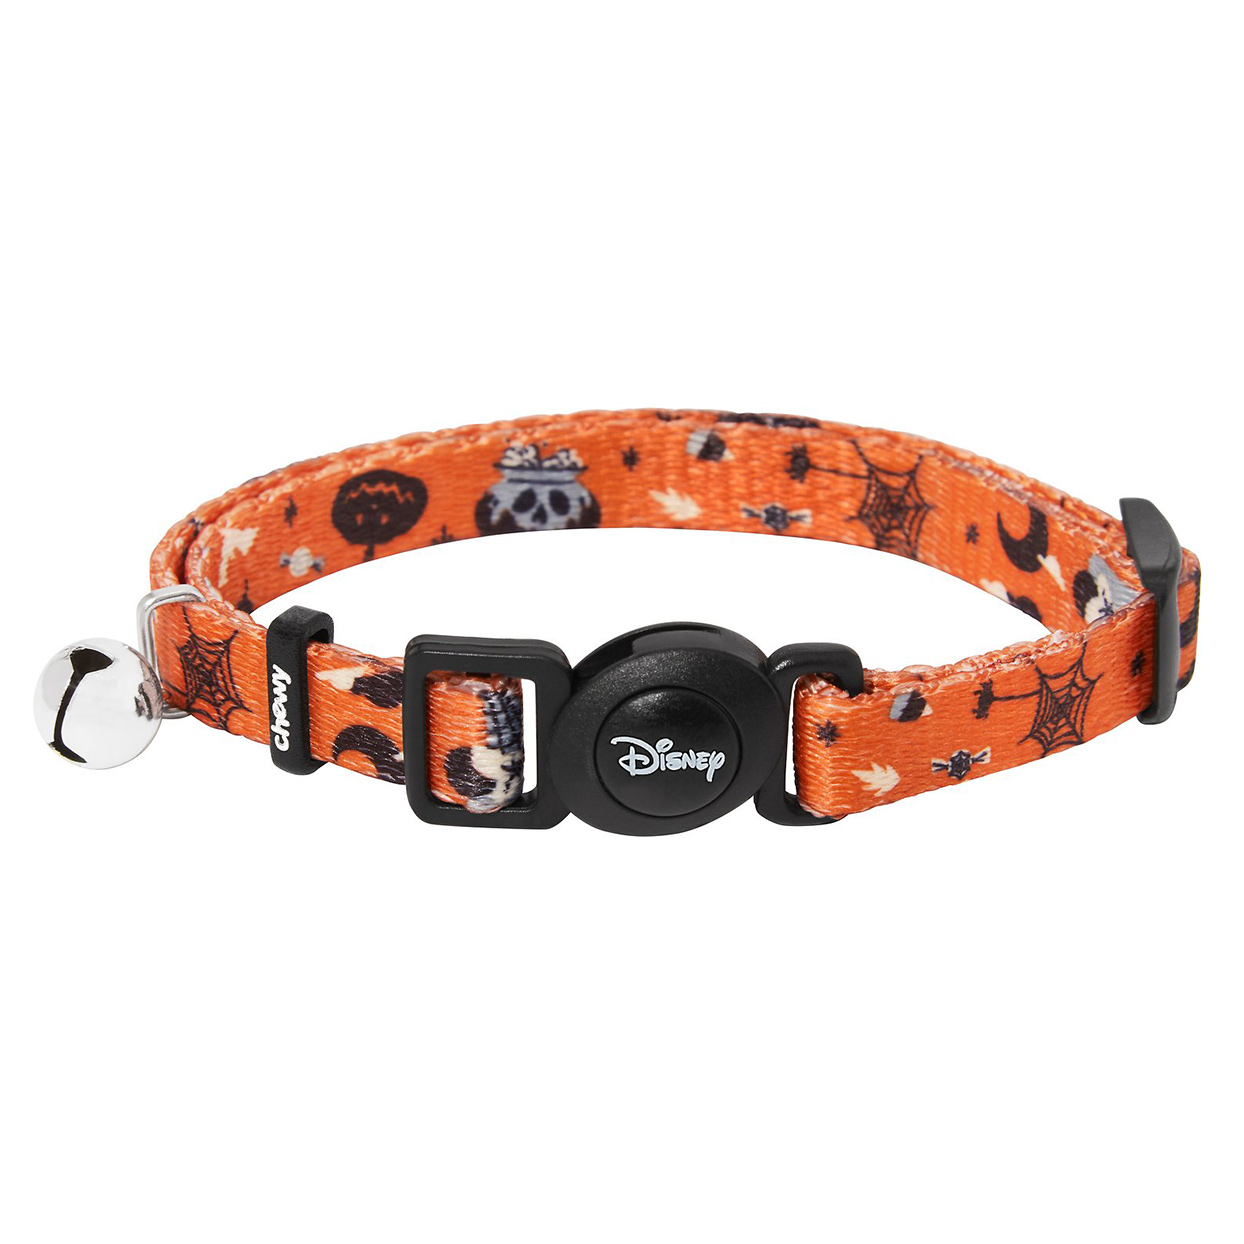 Disney Minnie Mouse Halloween Cat Collar on a white backround